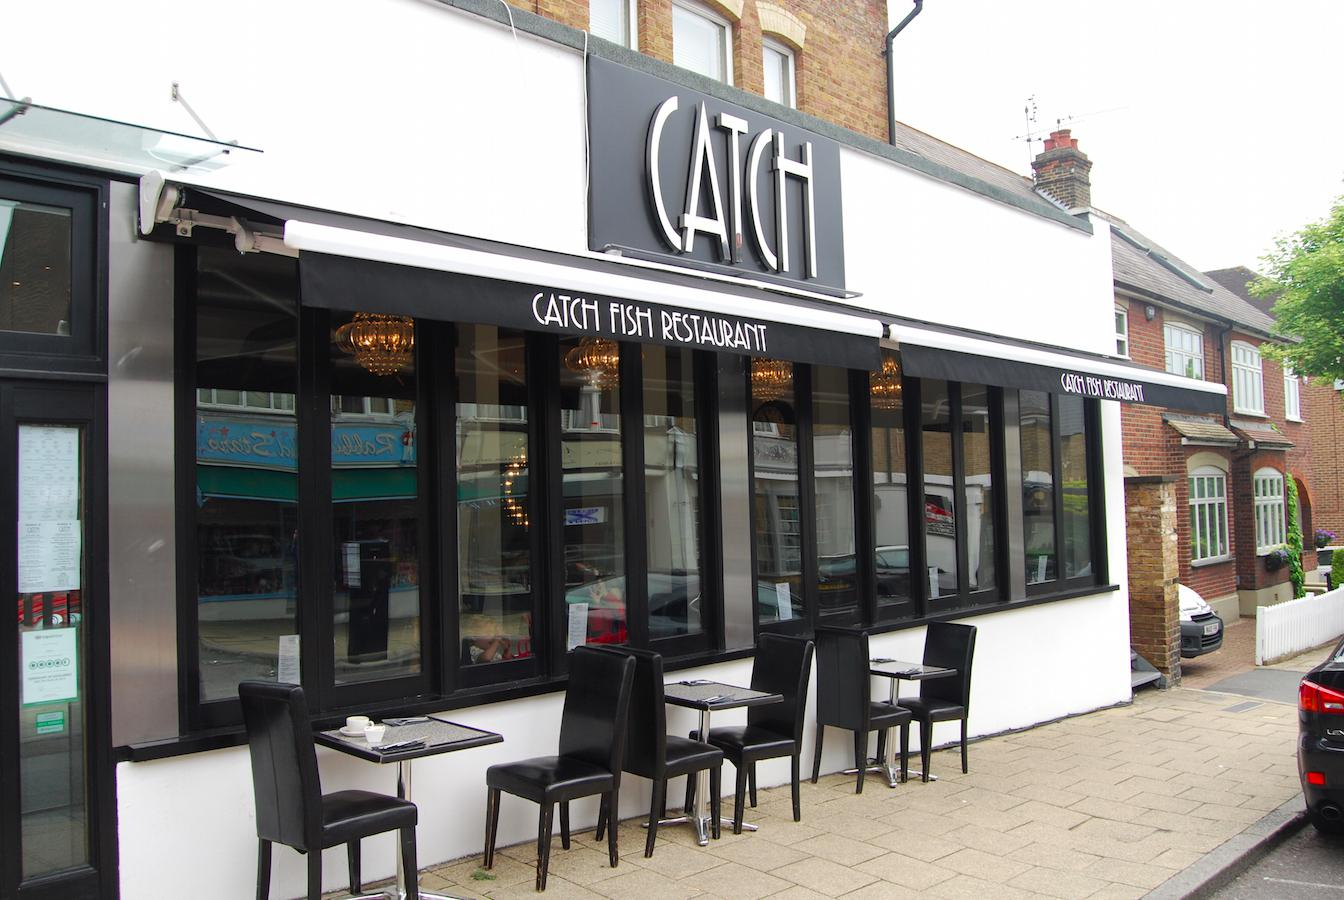 Commercial Awning – Catch Restaurant